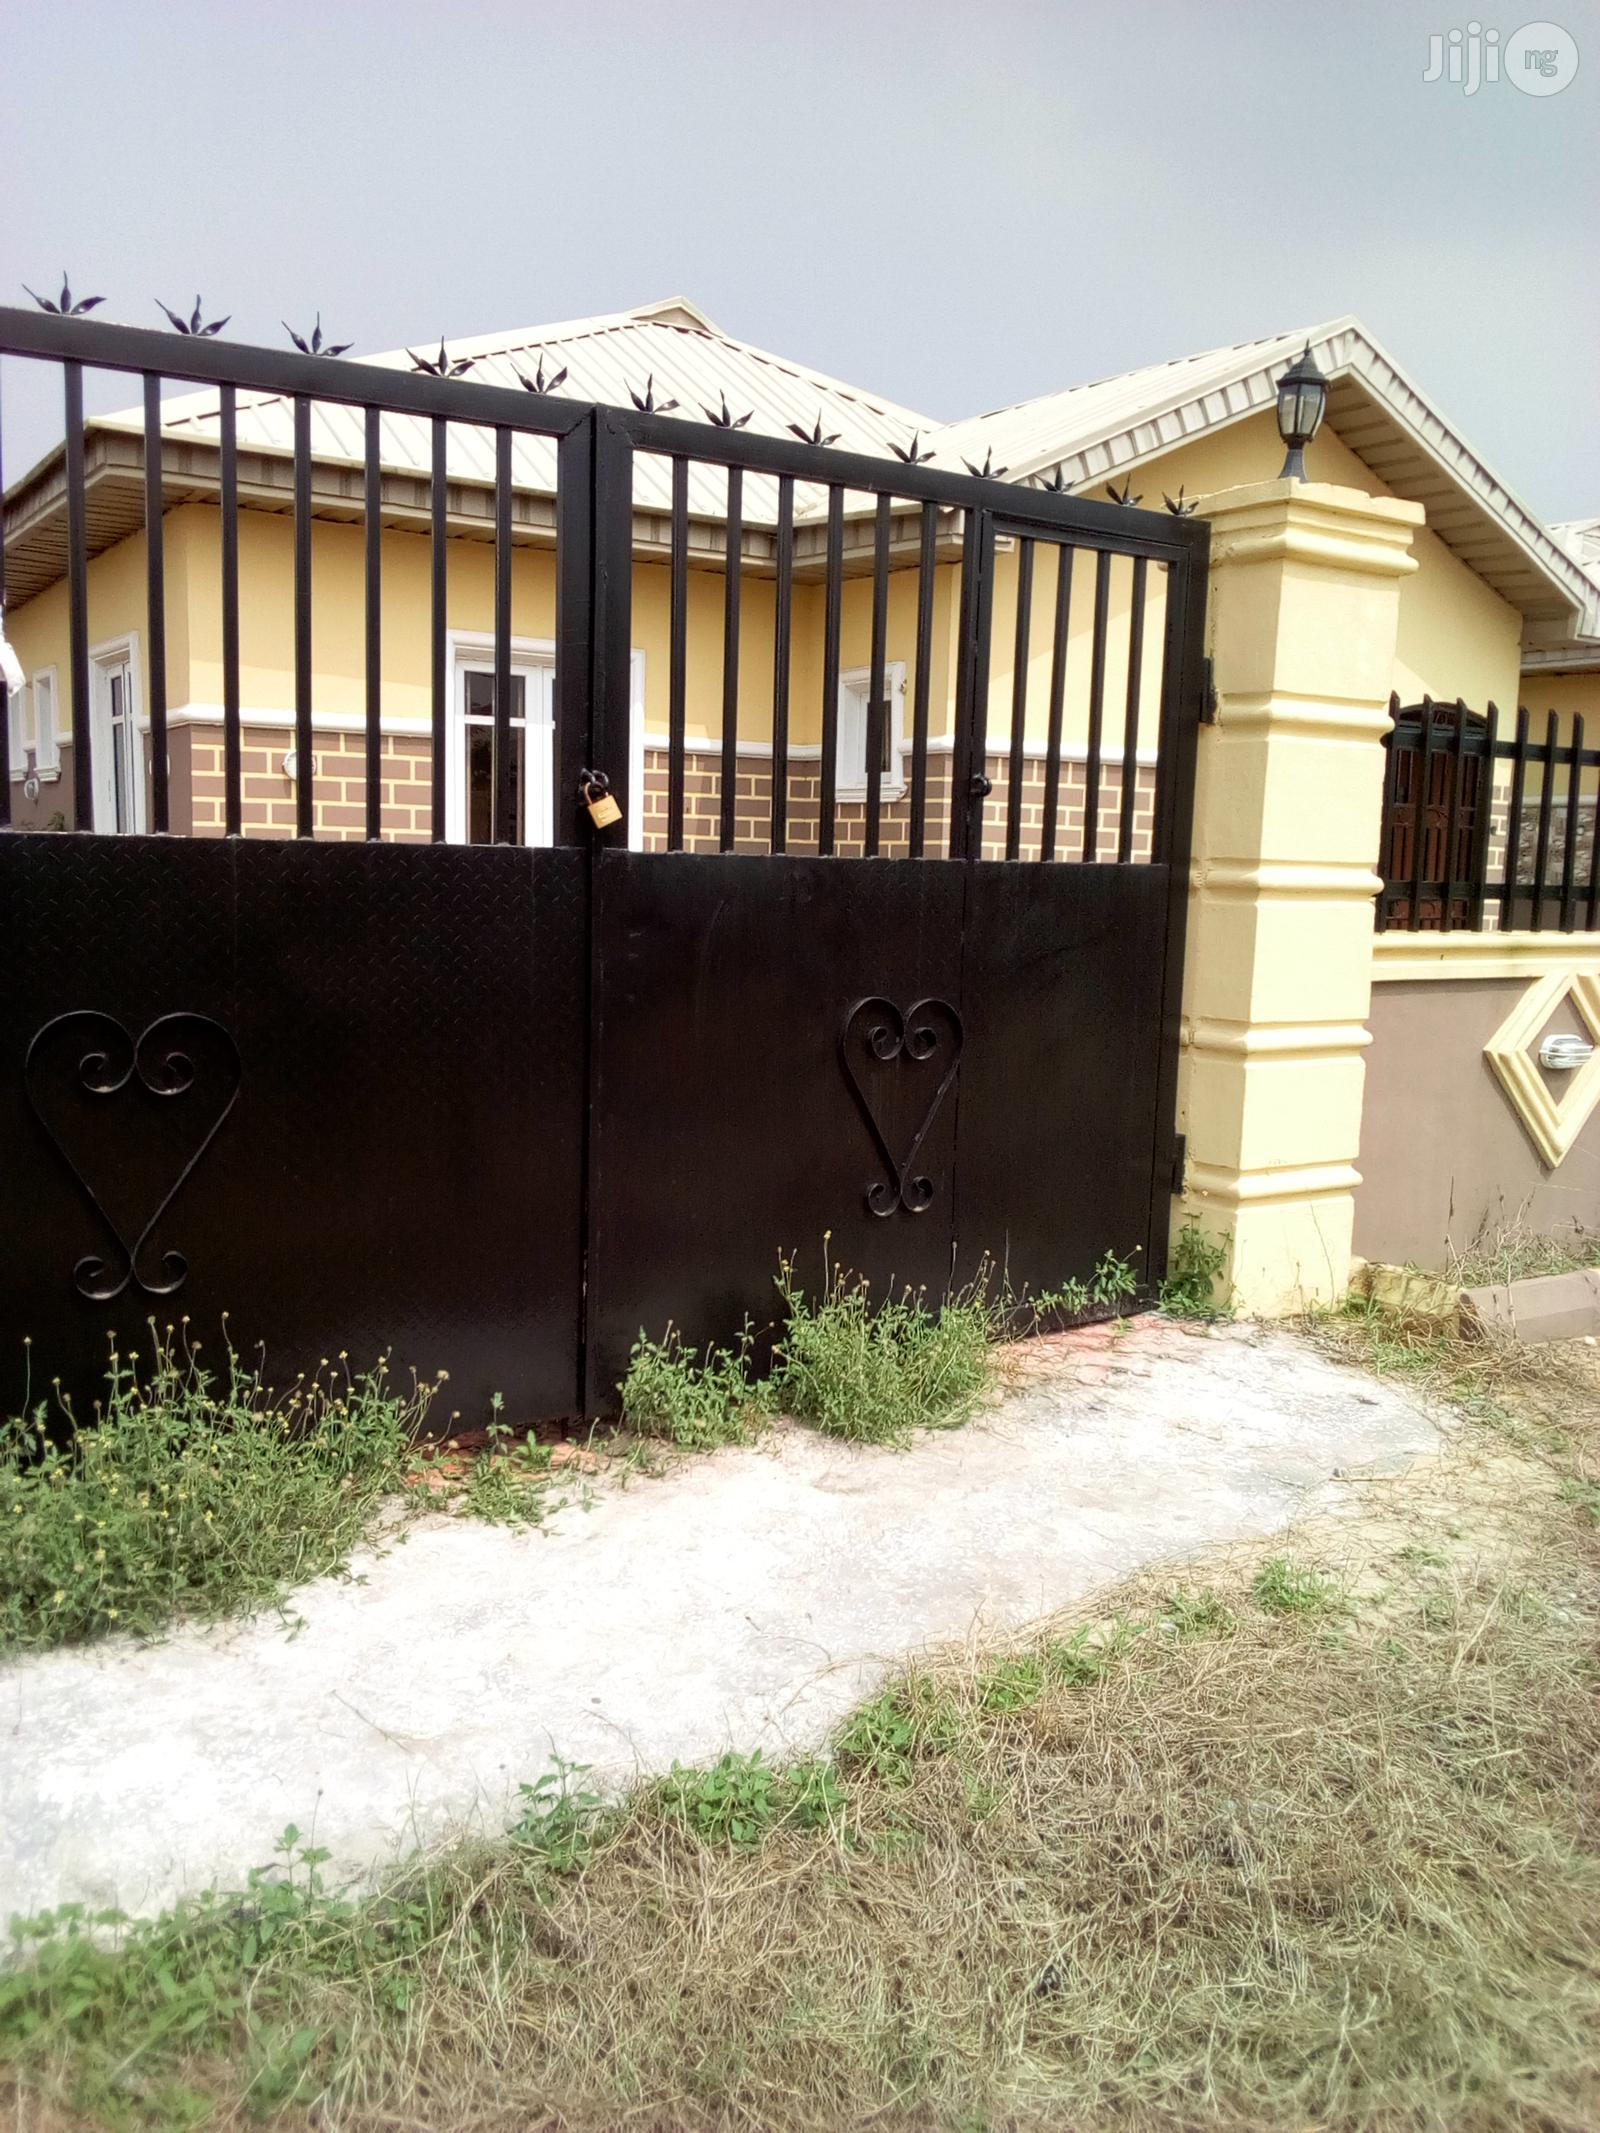 2 & 3 Bed Room Flats For Rent, Ijanikin, Ojo | Houses & Apartments For Rent for sale in Ojo, Lagos State, Nigeria